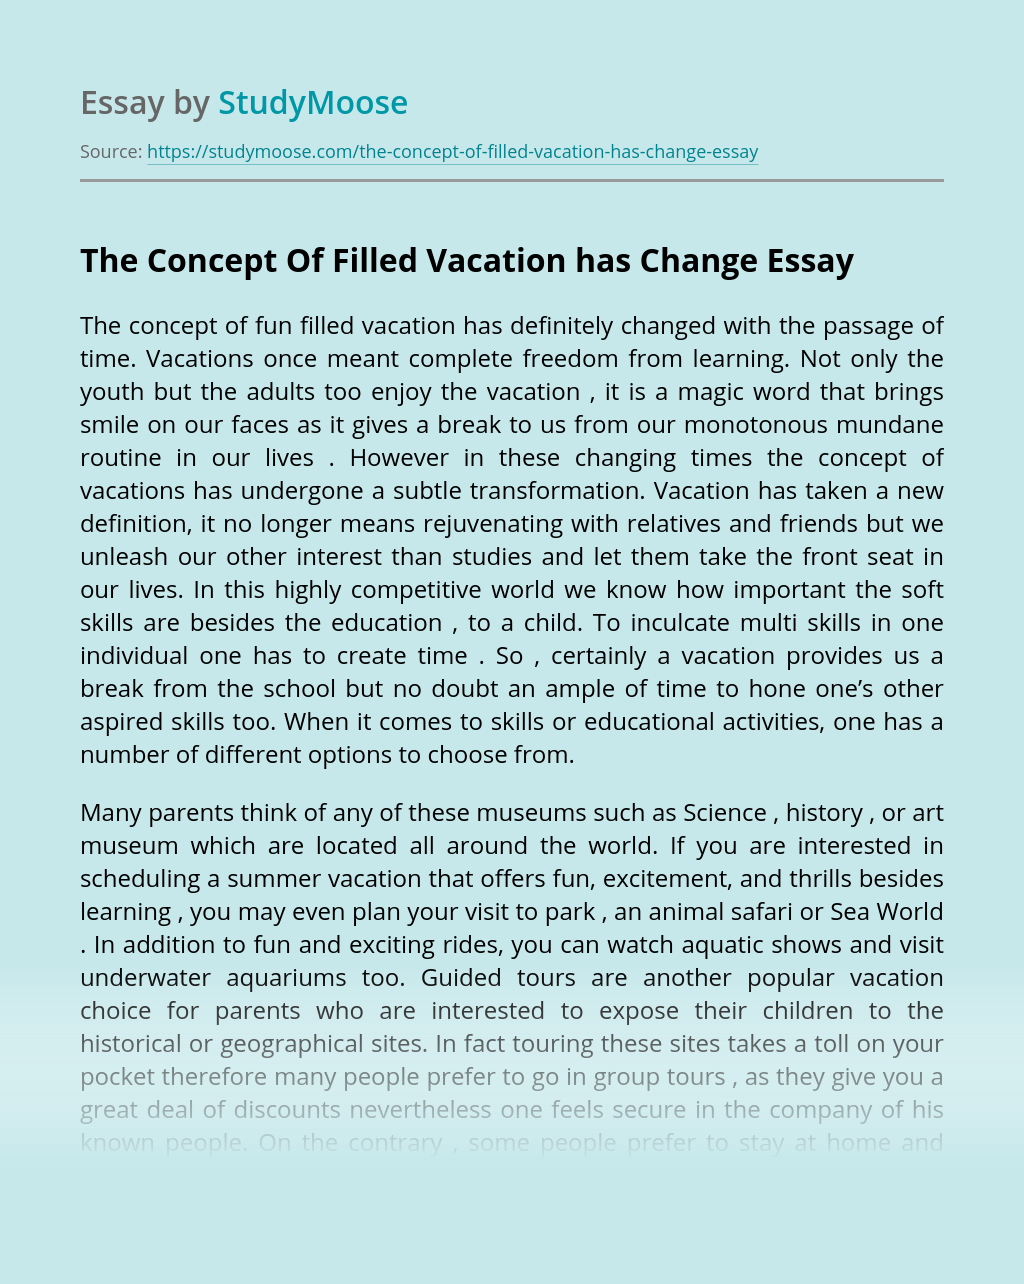 The Concept Of Filled Vacation has Change